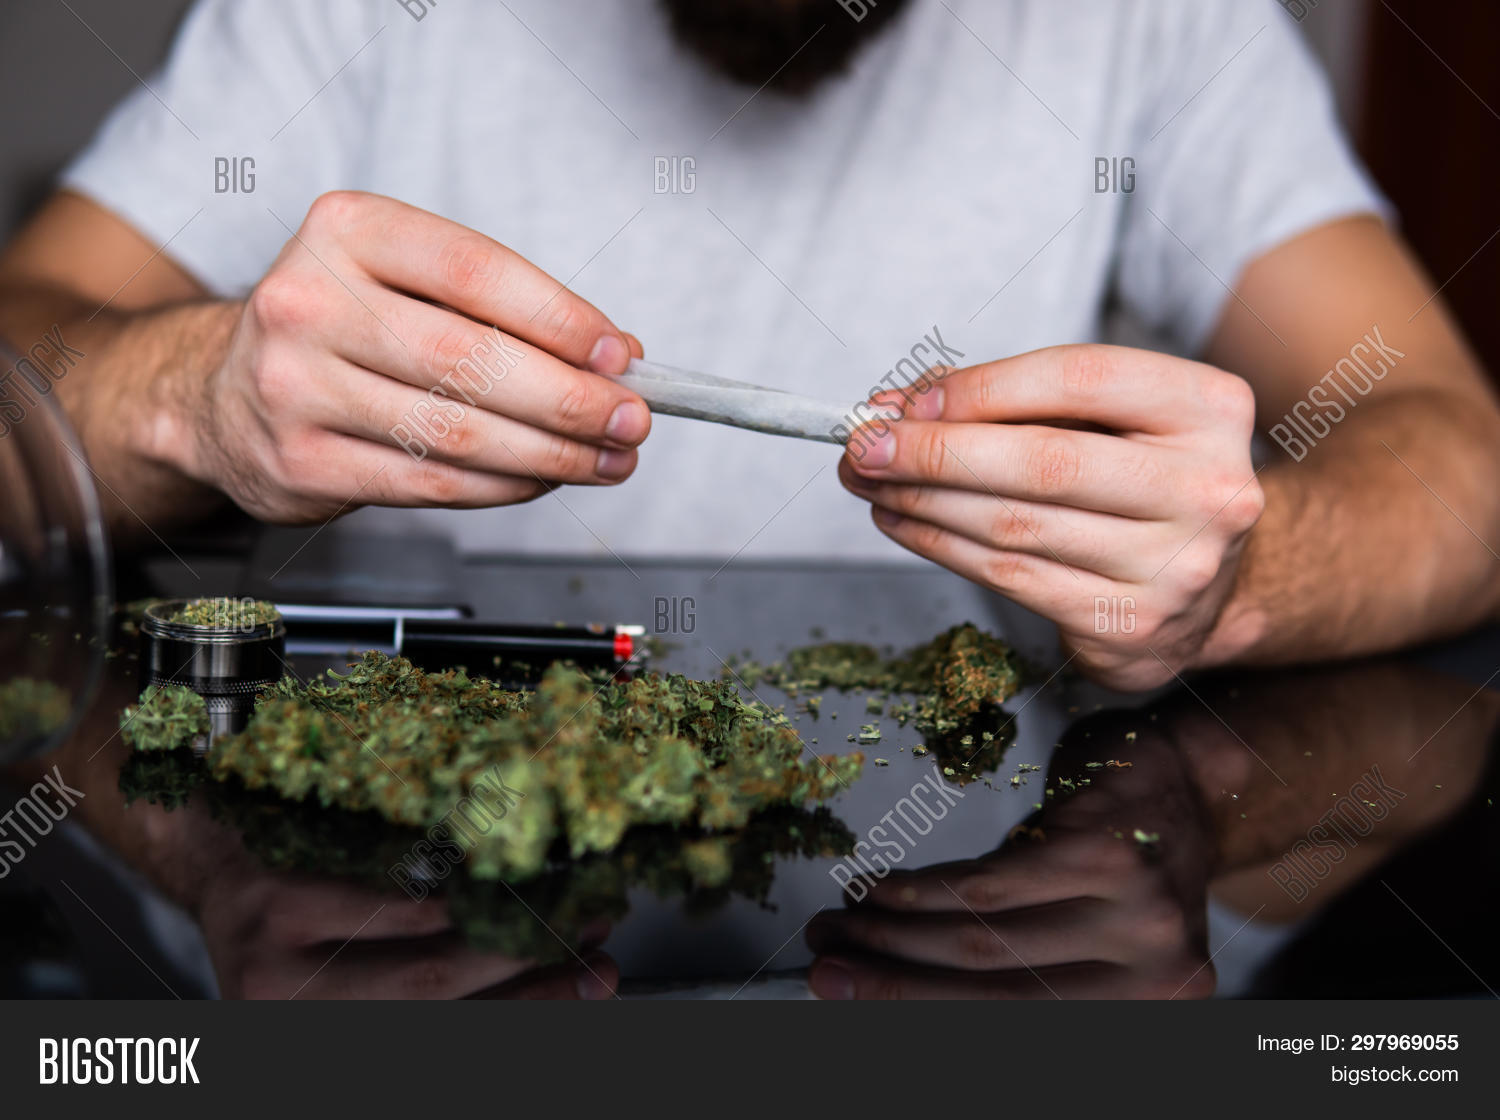 Drugs Narcotic Concept Image Photo Free Trial Bigstock